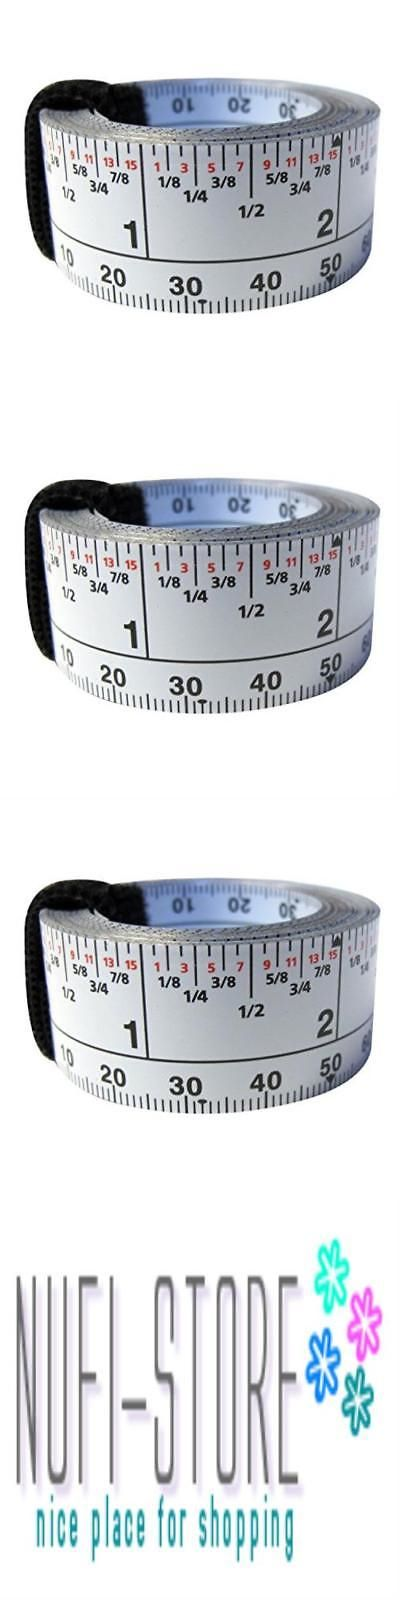 Measuring Tapes And Rulers 29524 Fastcap Self Adhesive 16 Measuring Tape Reversible Left Or Right Read Strong New Buy Ruler Tape Measure Personalized Items